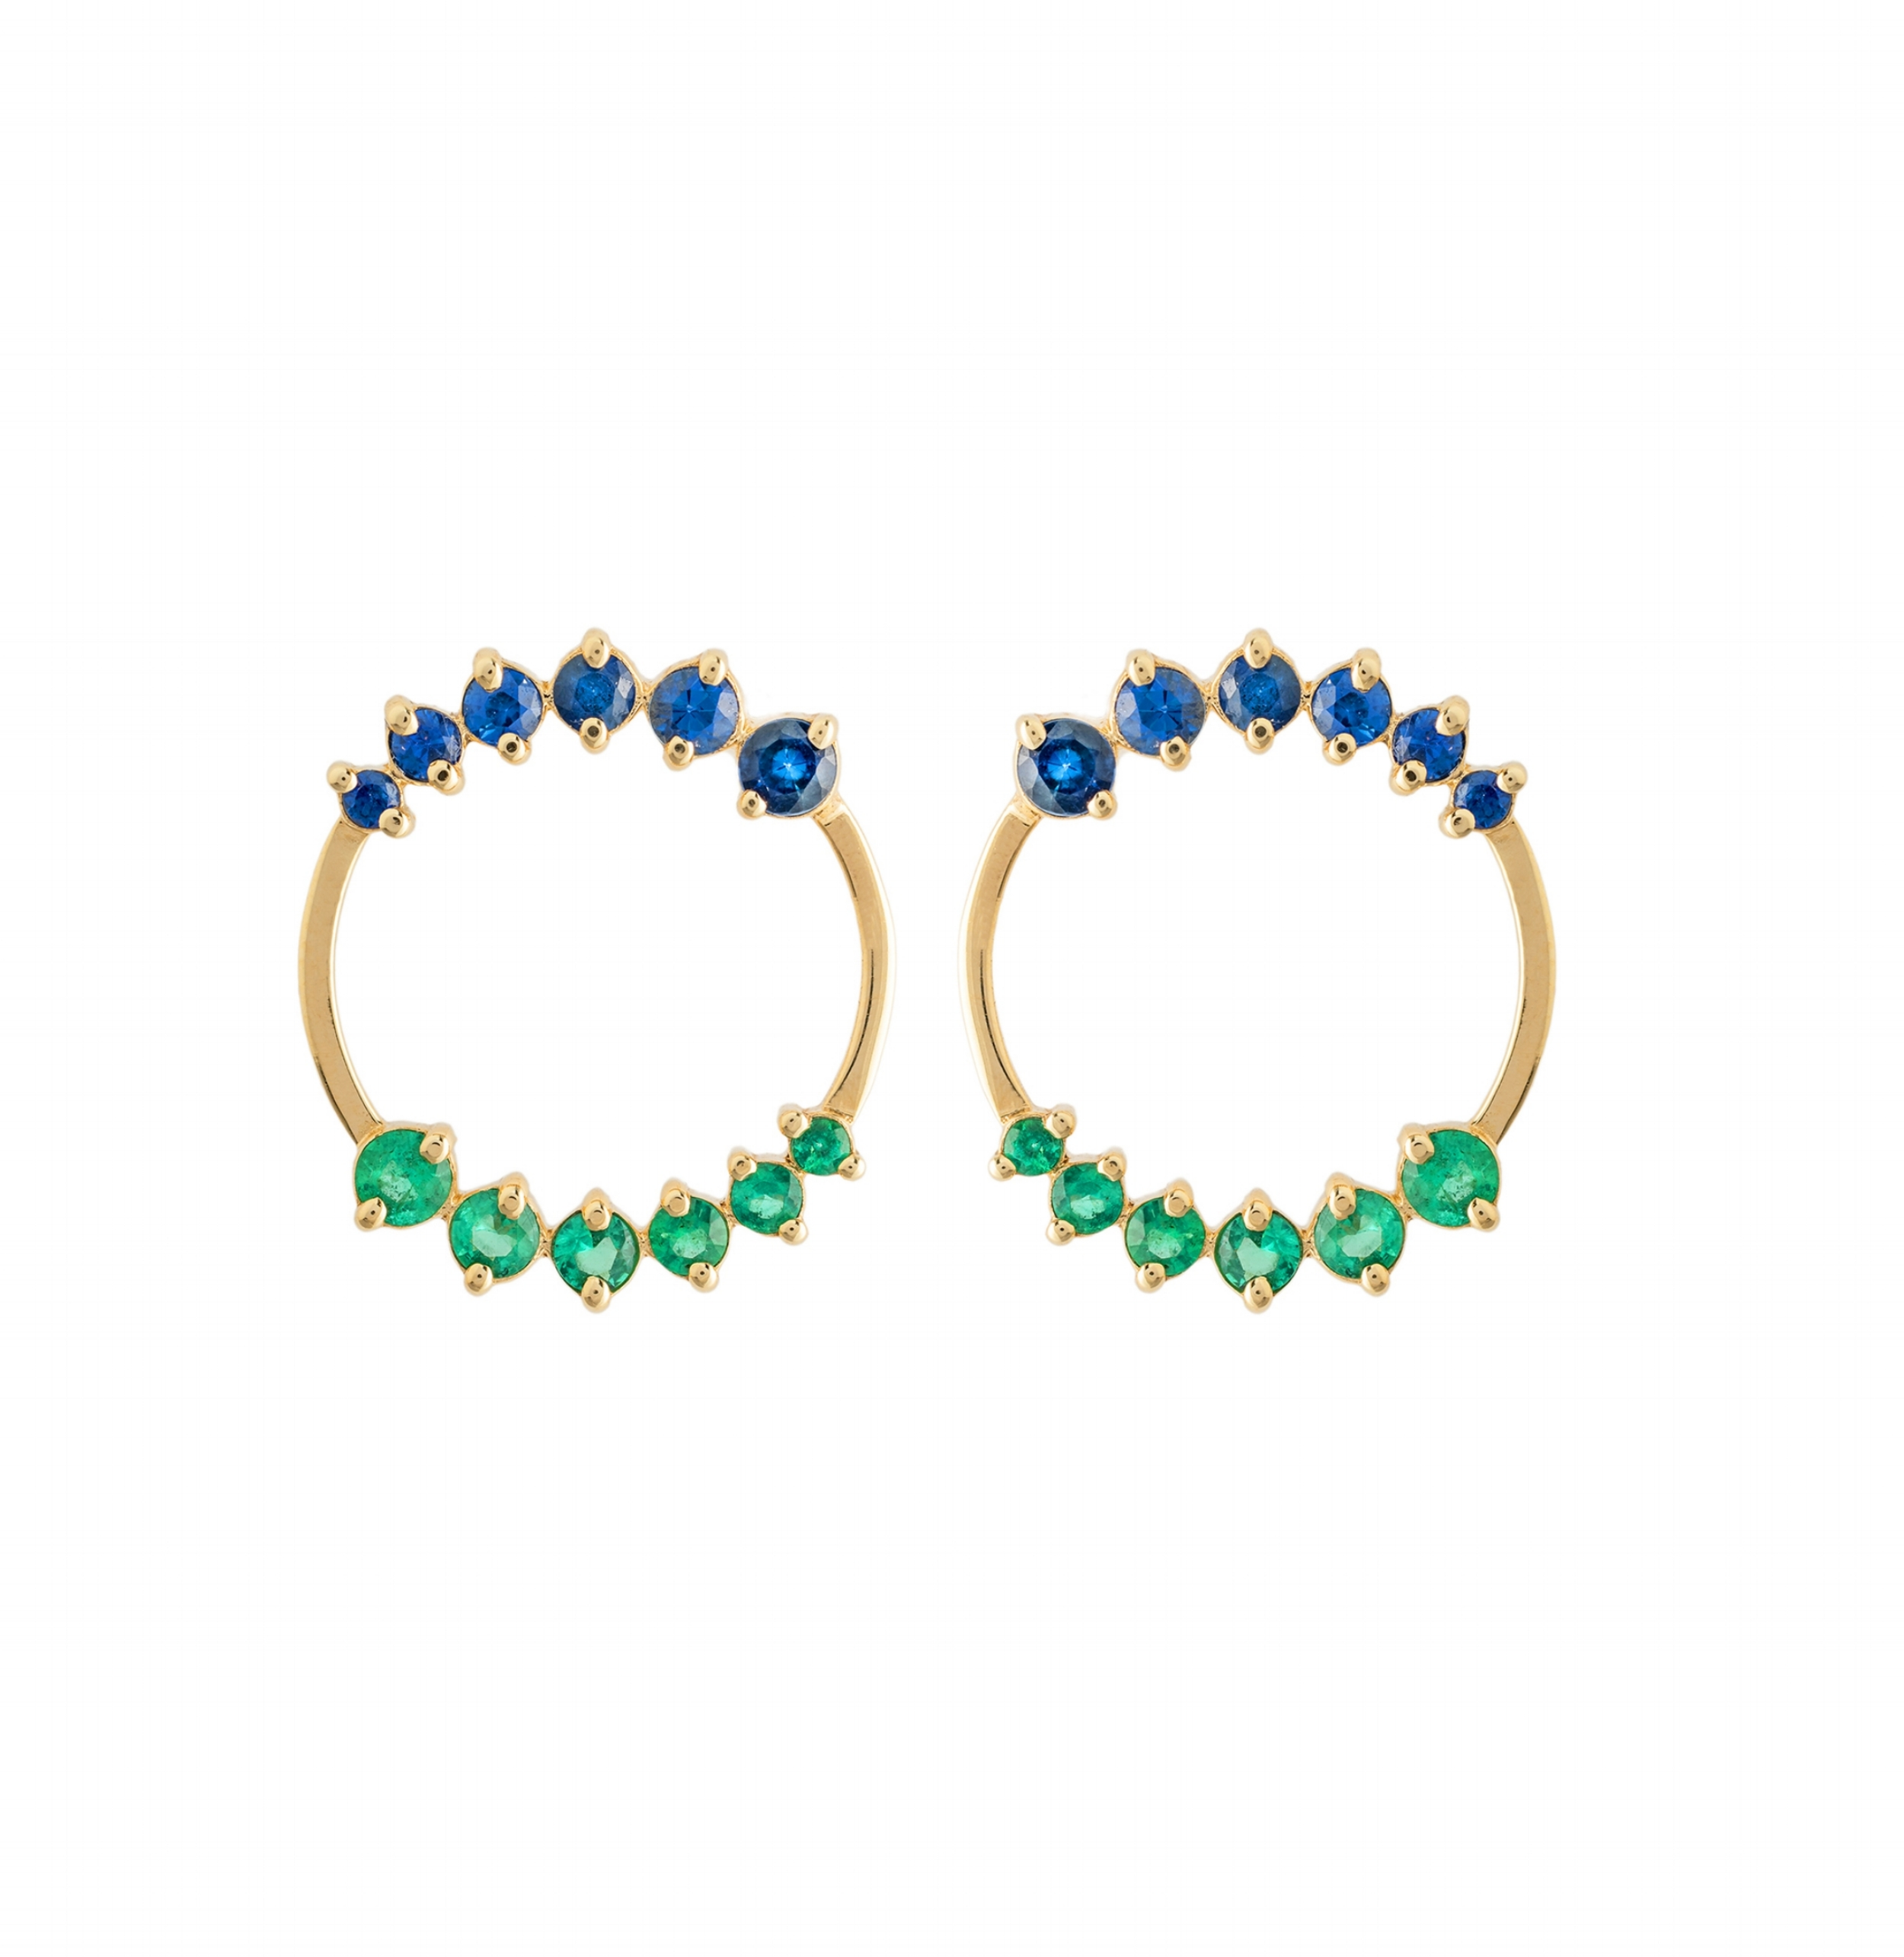 Caldera Earrings